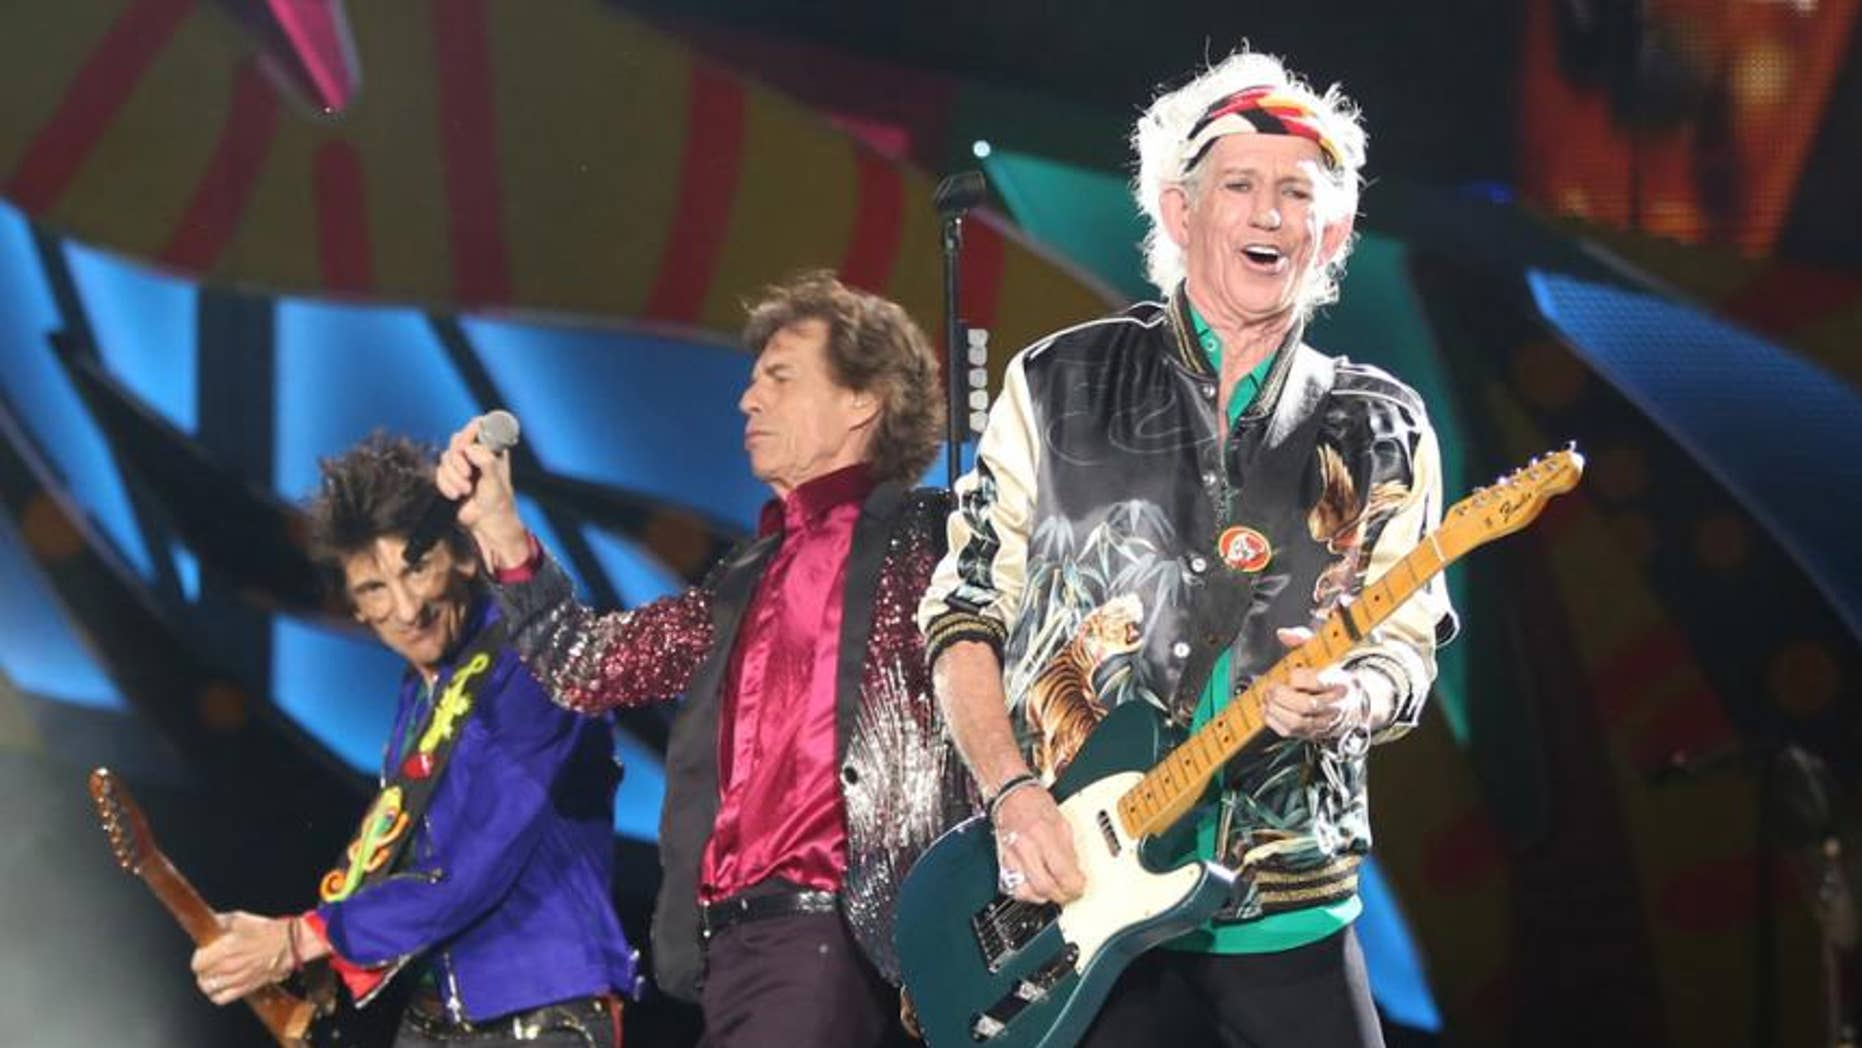 The Rolling Stones seem to be planning another U.S. tour.